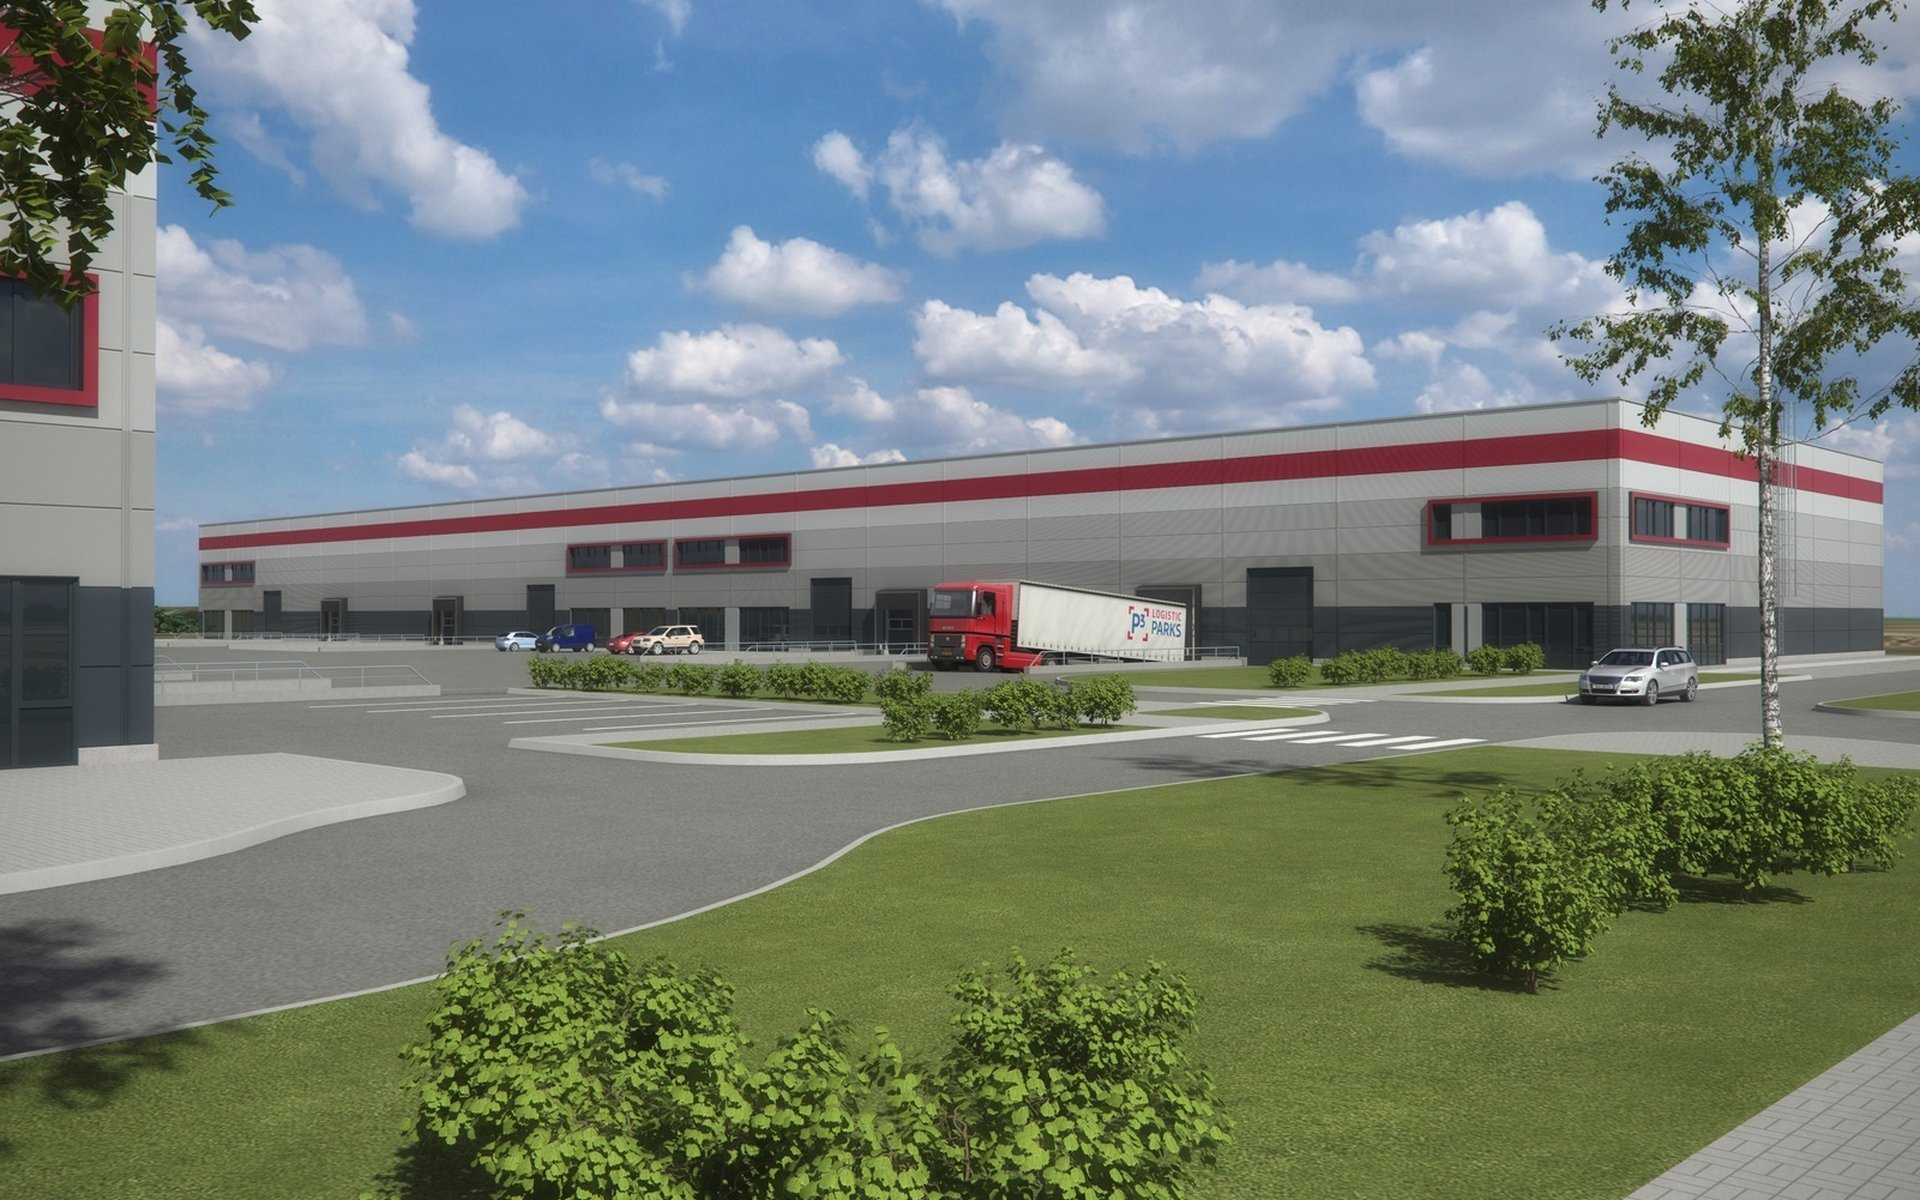 P3 Park Horní Počernice - Lease of warehouse and production space